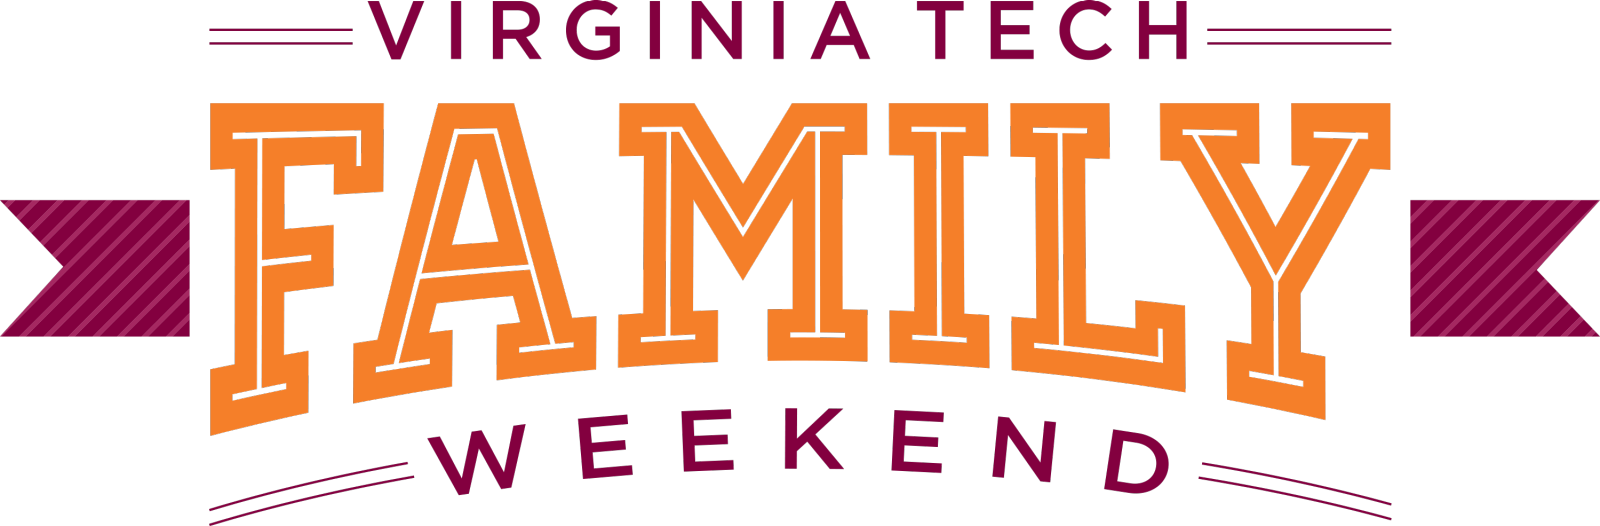 VT Family Weekend logo